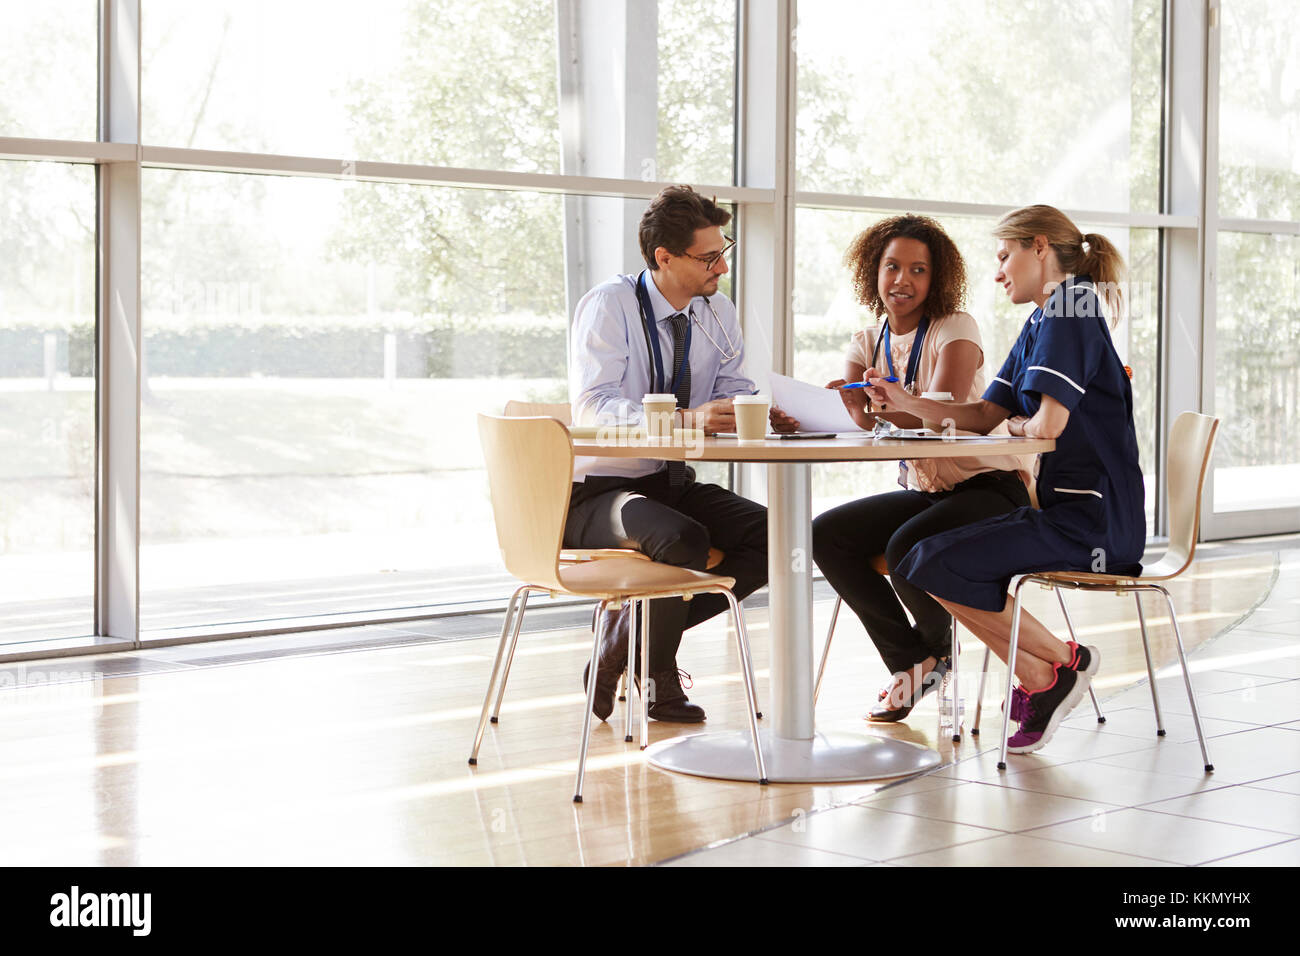 Three senior healthcare workers in a meeting - Stock Image